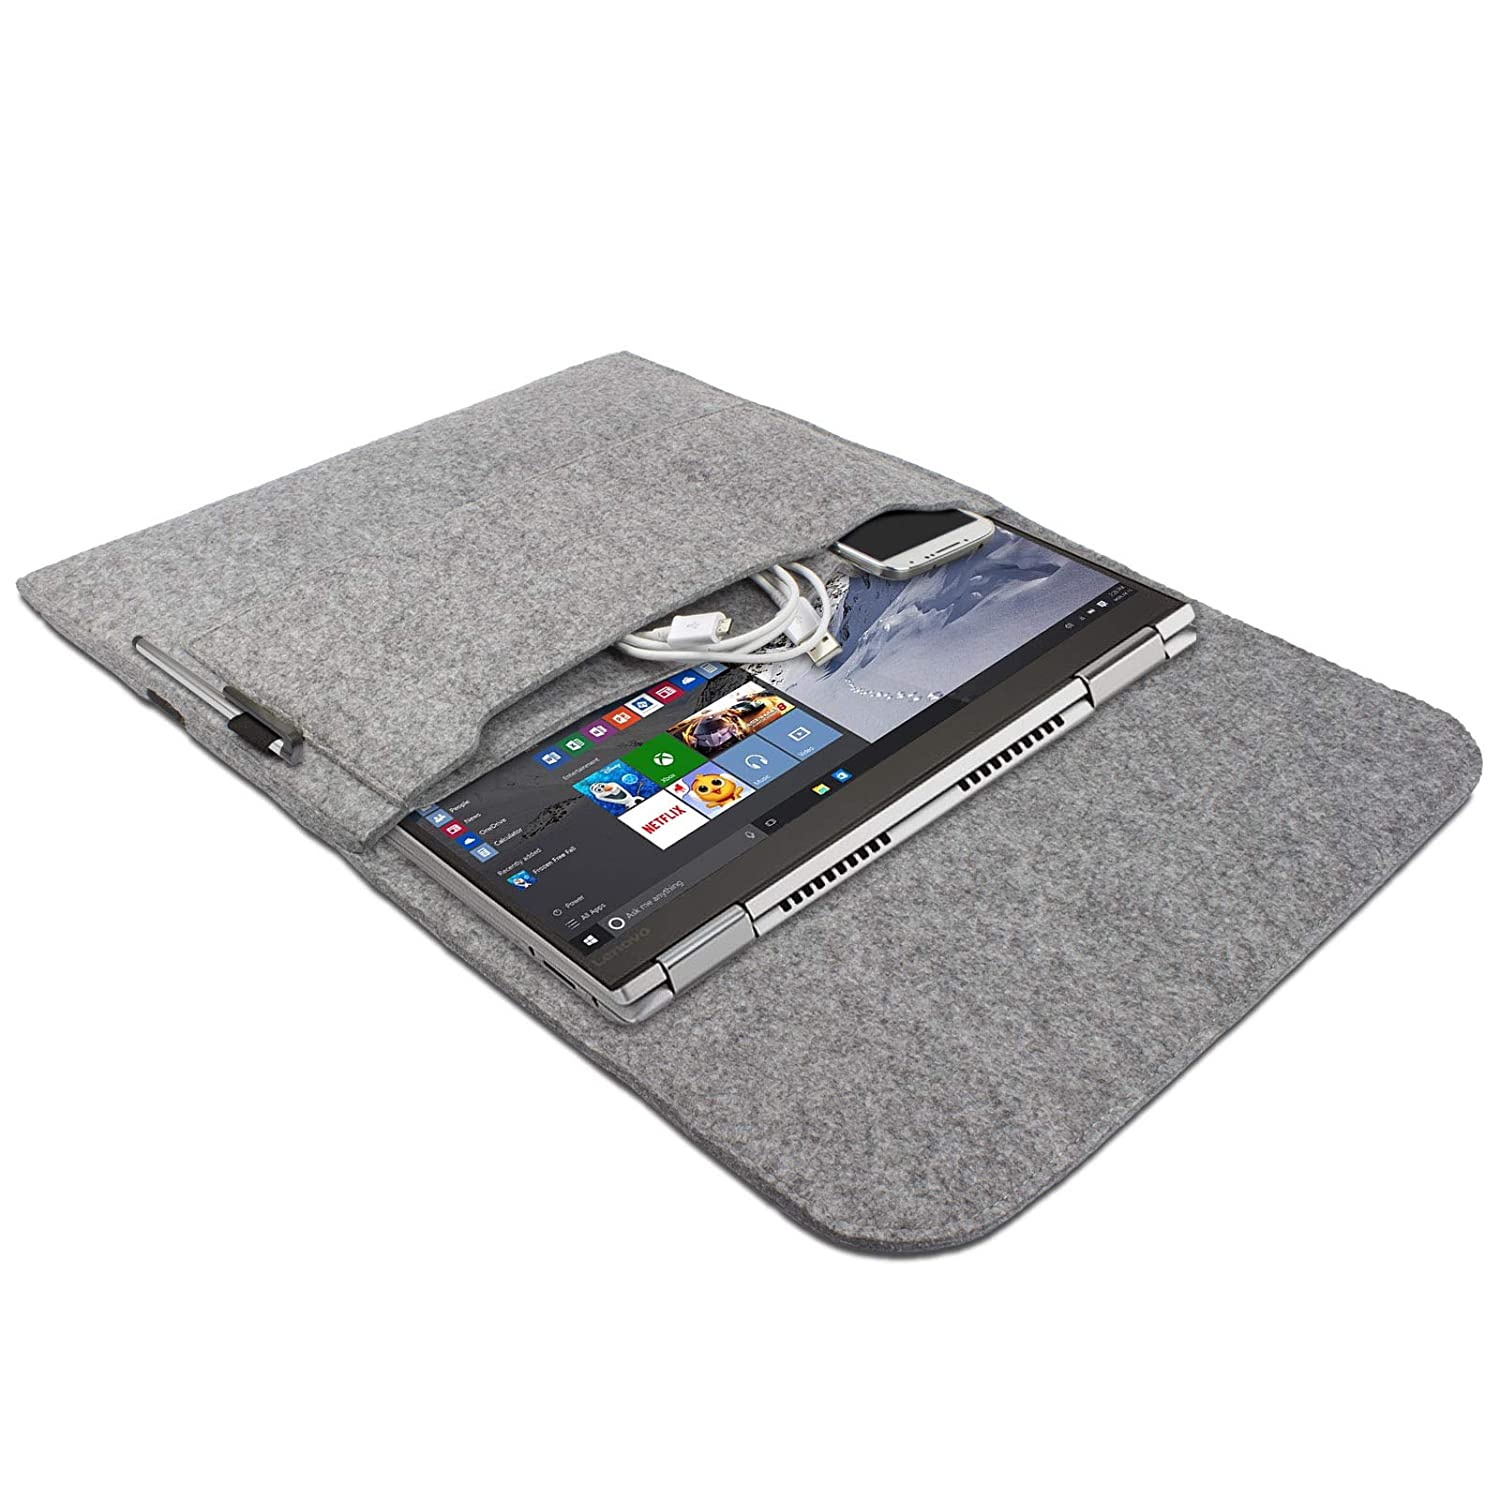 eFabrik – Funda para Lenovo Yoga 710 Funda 14 Pulgadas Ultrabook Notebook Case Soft Cover Funda Sleeve Fieltro Gris Claro